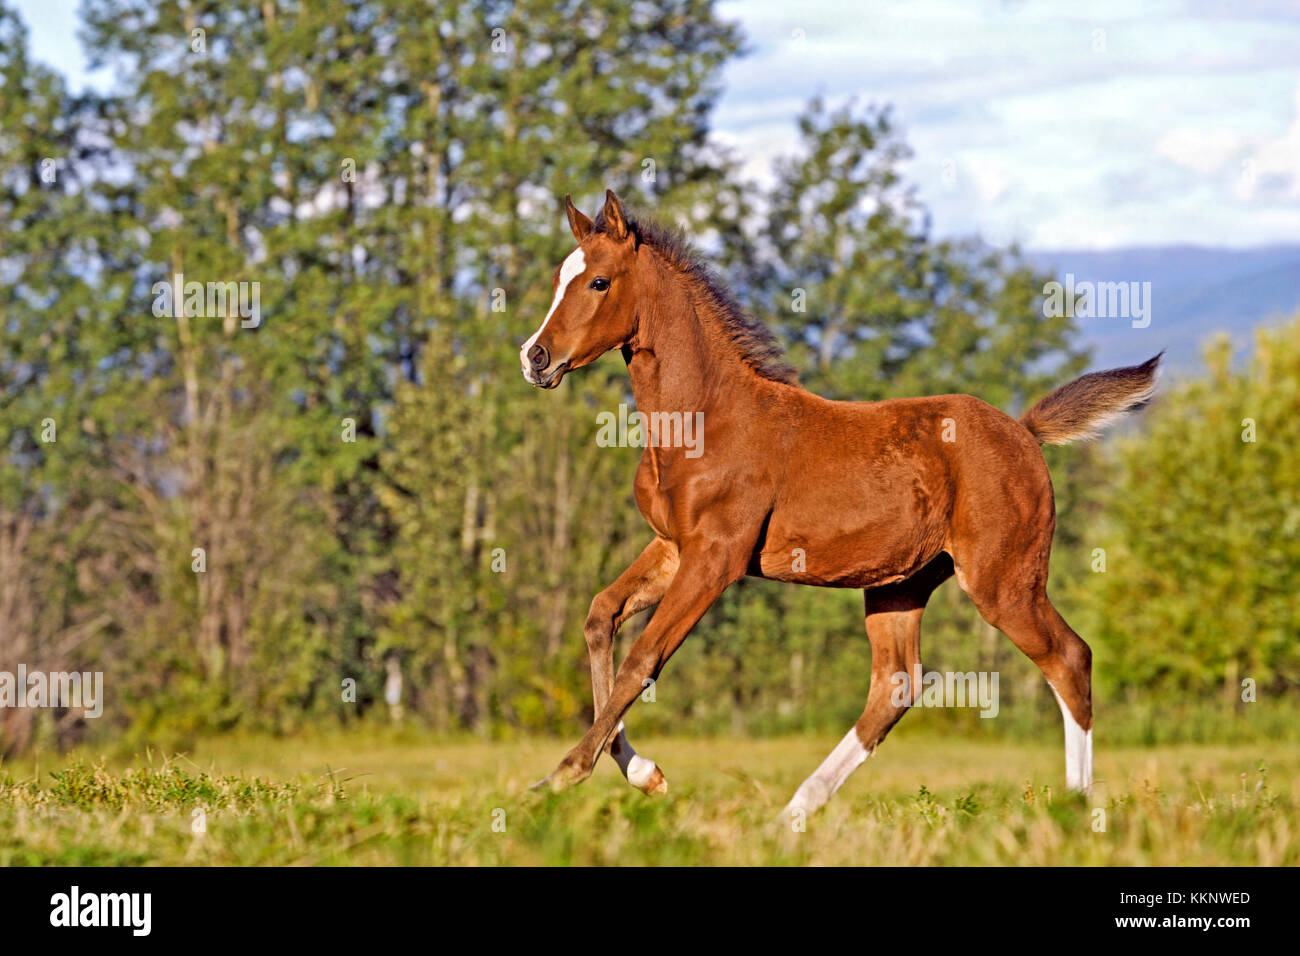 Playful Bay Arabian Foal running at spring pasture - Stock Image